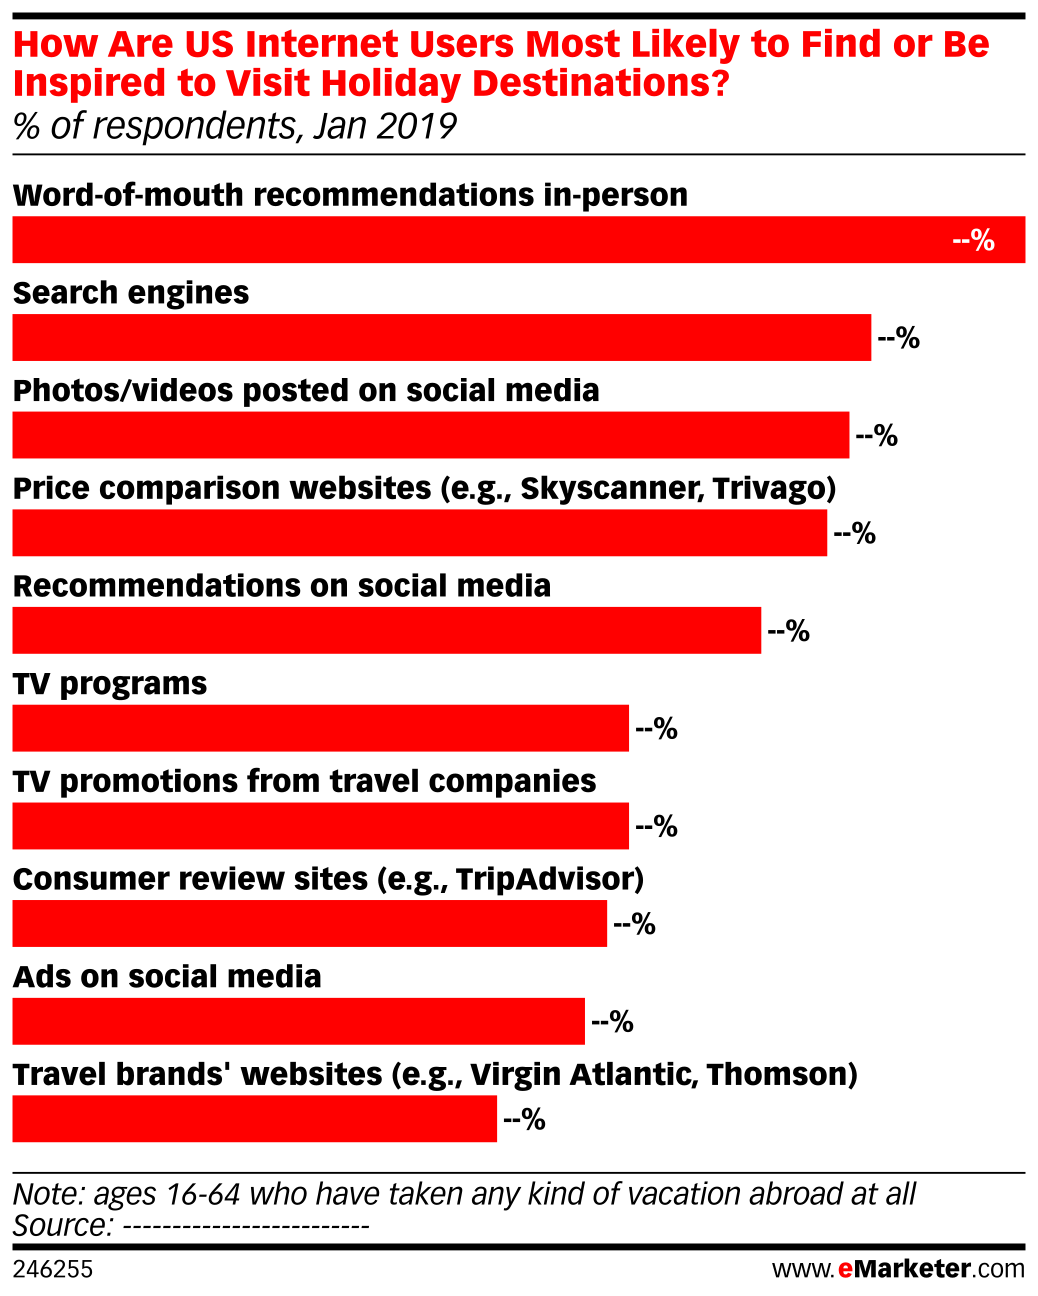 How Are US Internet Users Most Likely to Find or Be Inspired to Visit Holiday Destinations? (% of respondents, Jan 2019)